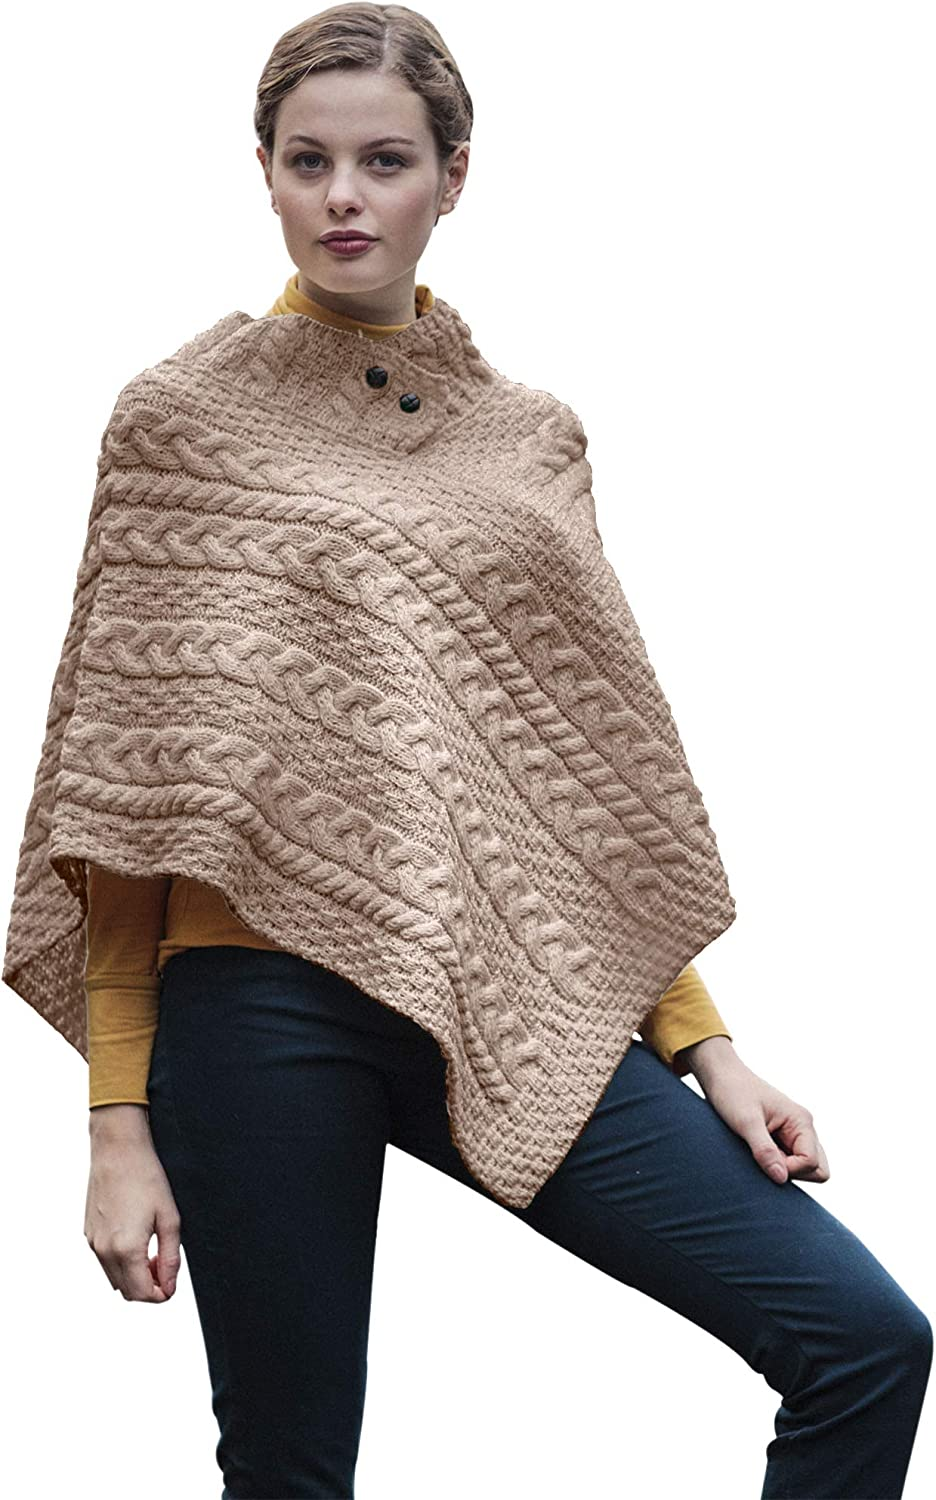 Natural Wool Wrap Carraig Donn Traditional Irish Shawl One Size Fits All